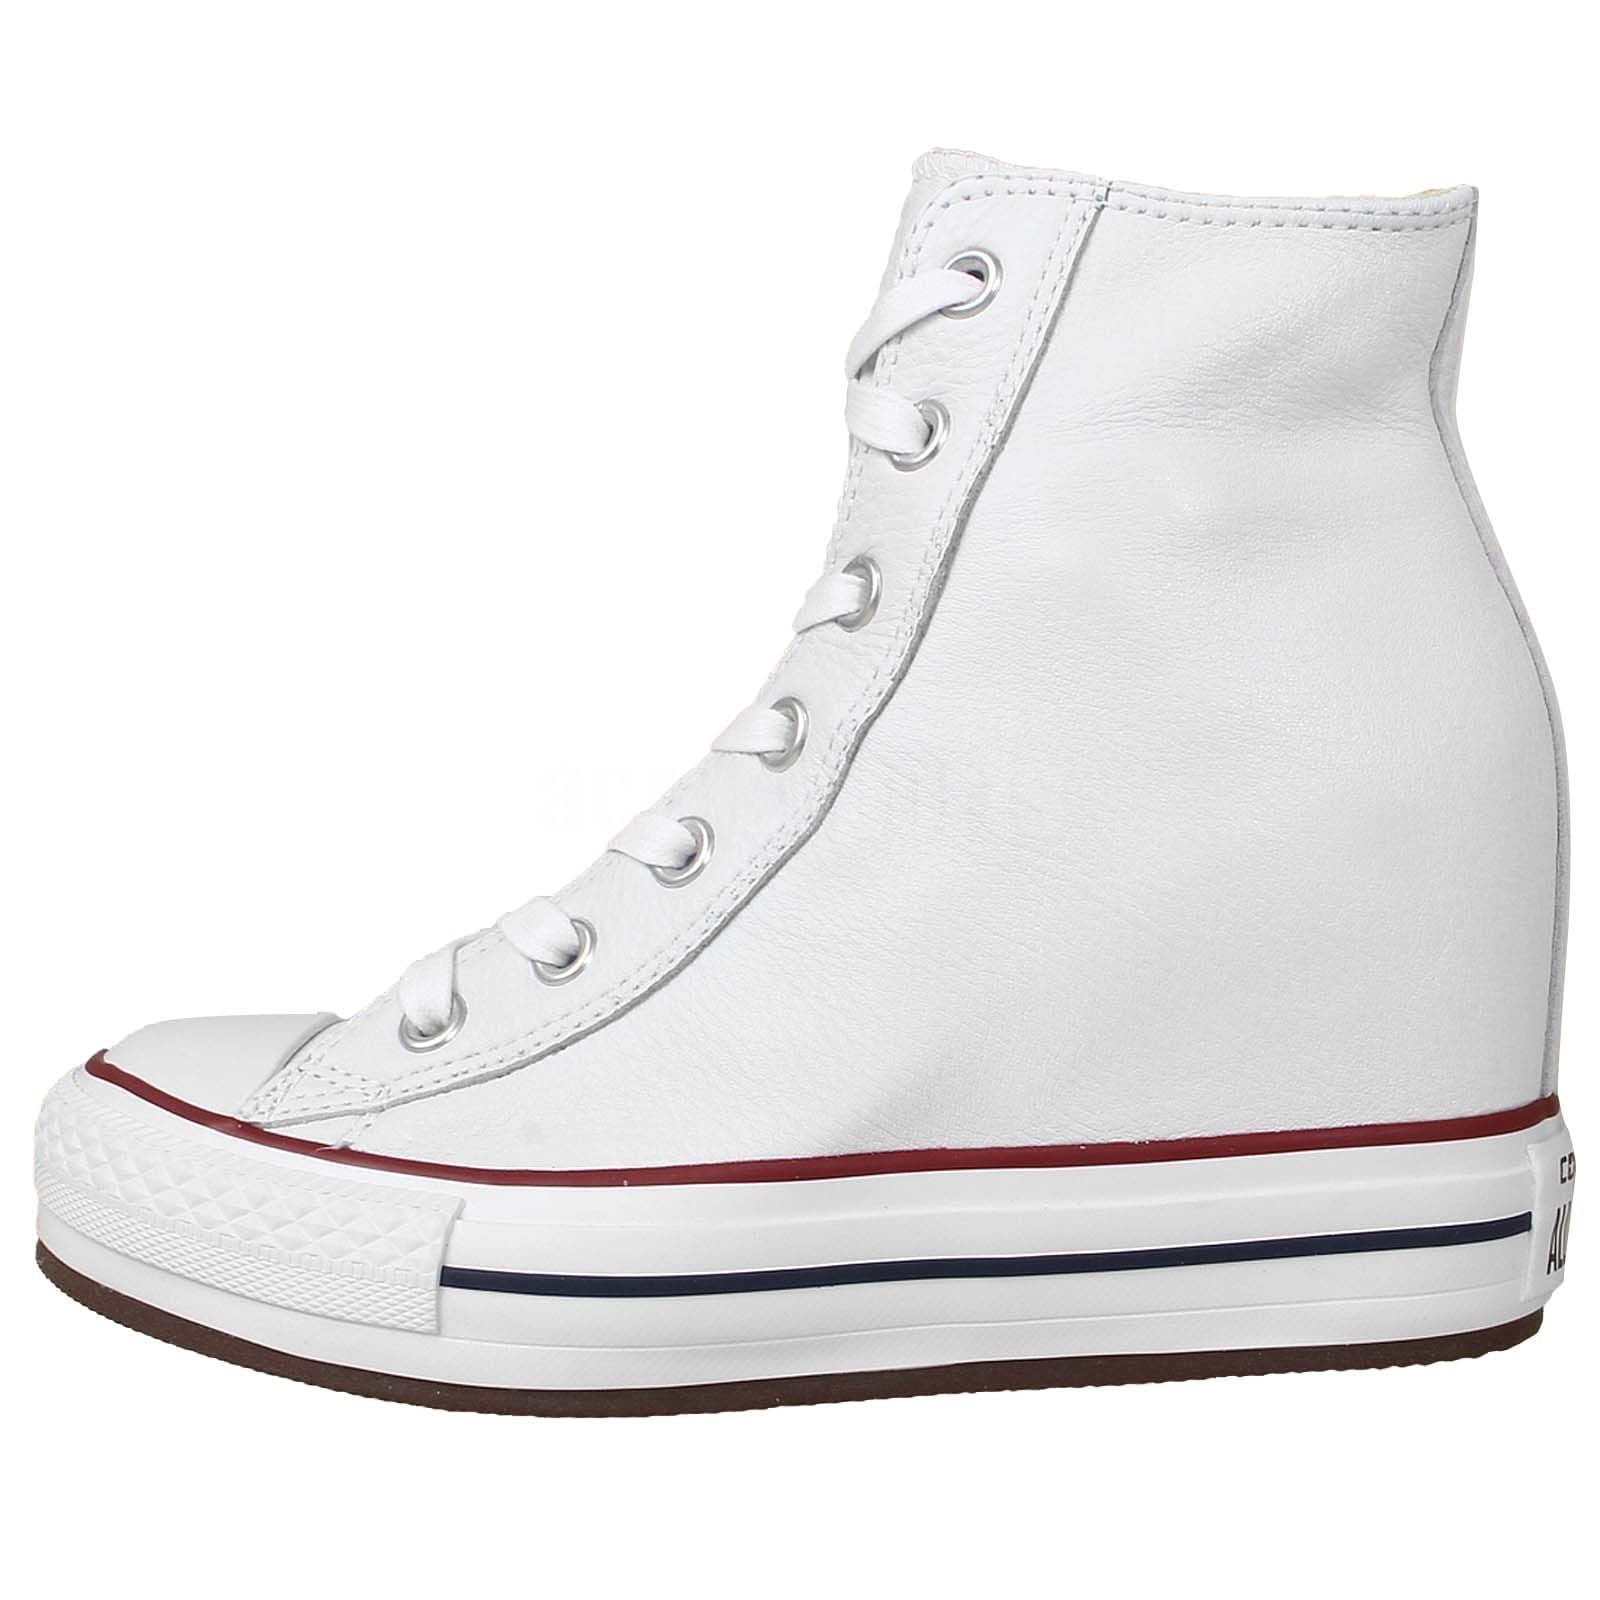 95b4c00a080c ... Converse Chuck Taylor All Star Plat Plus Hi White Leather Wedge 544927C  Soft Leather Famous Rock ...